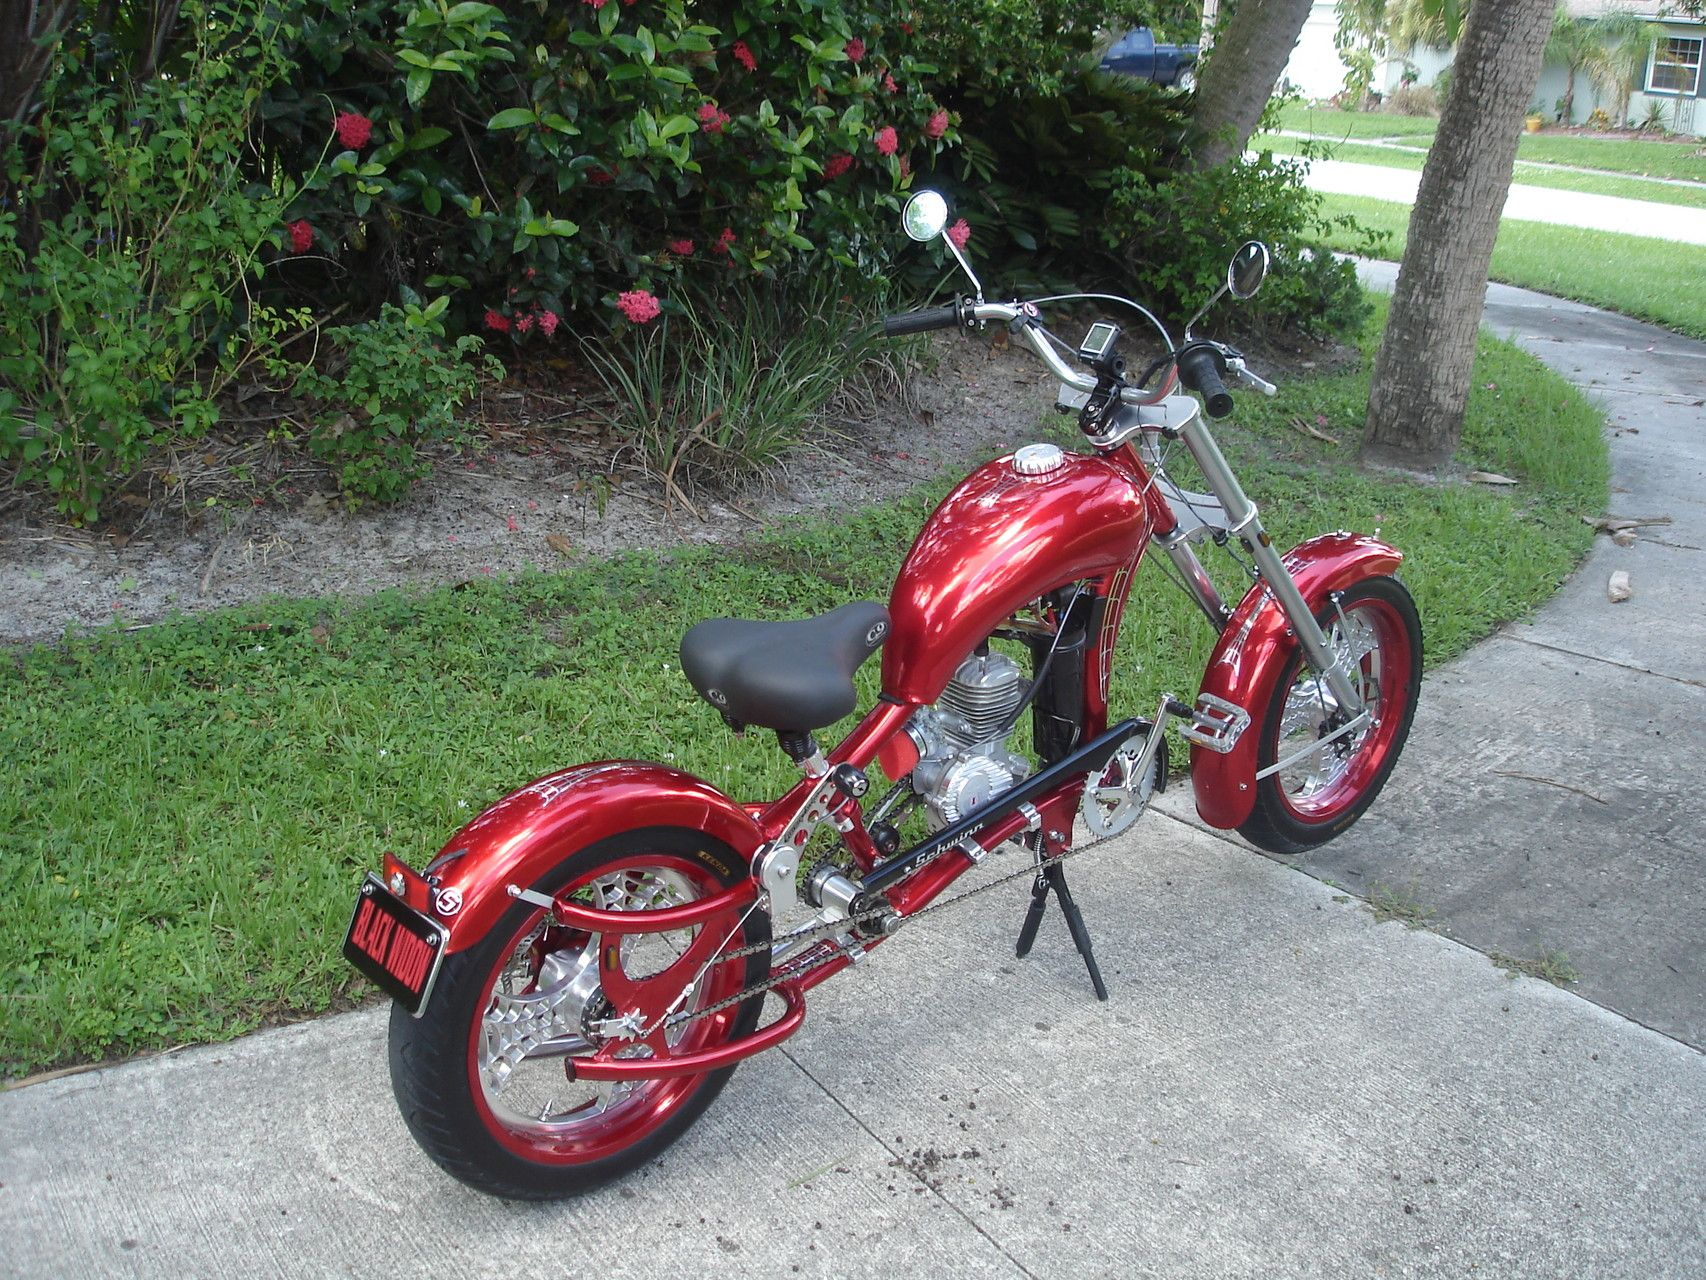 photos of custom motorized bicycles see occ schwinn. Black Bedroom Furniture Sets. Home Design Ideas